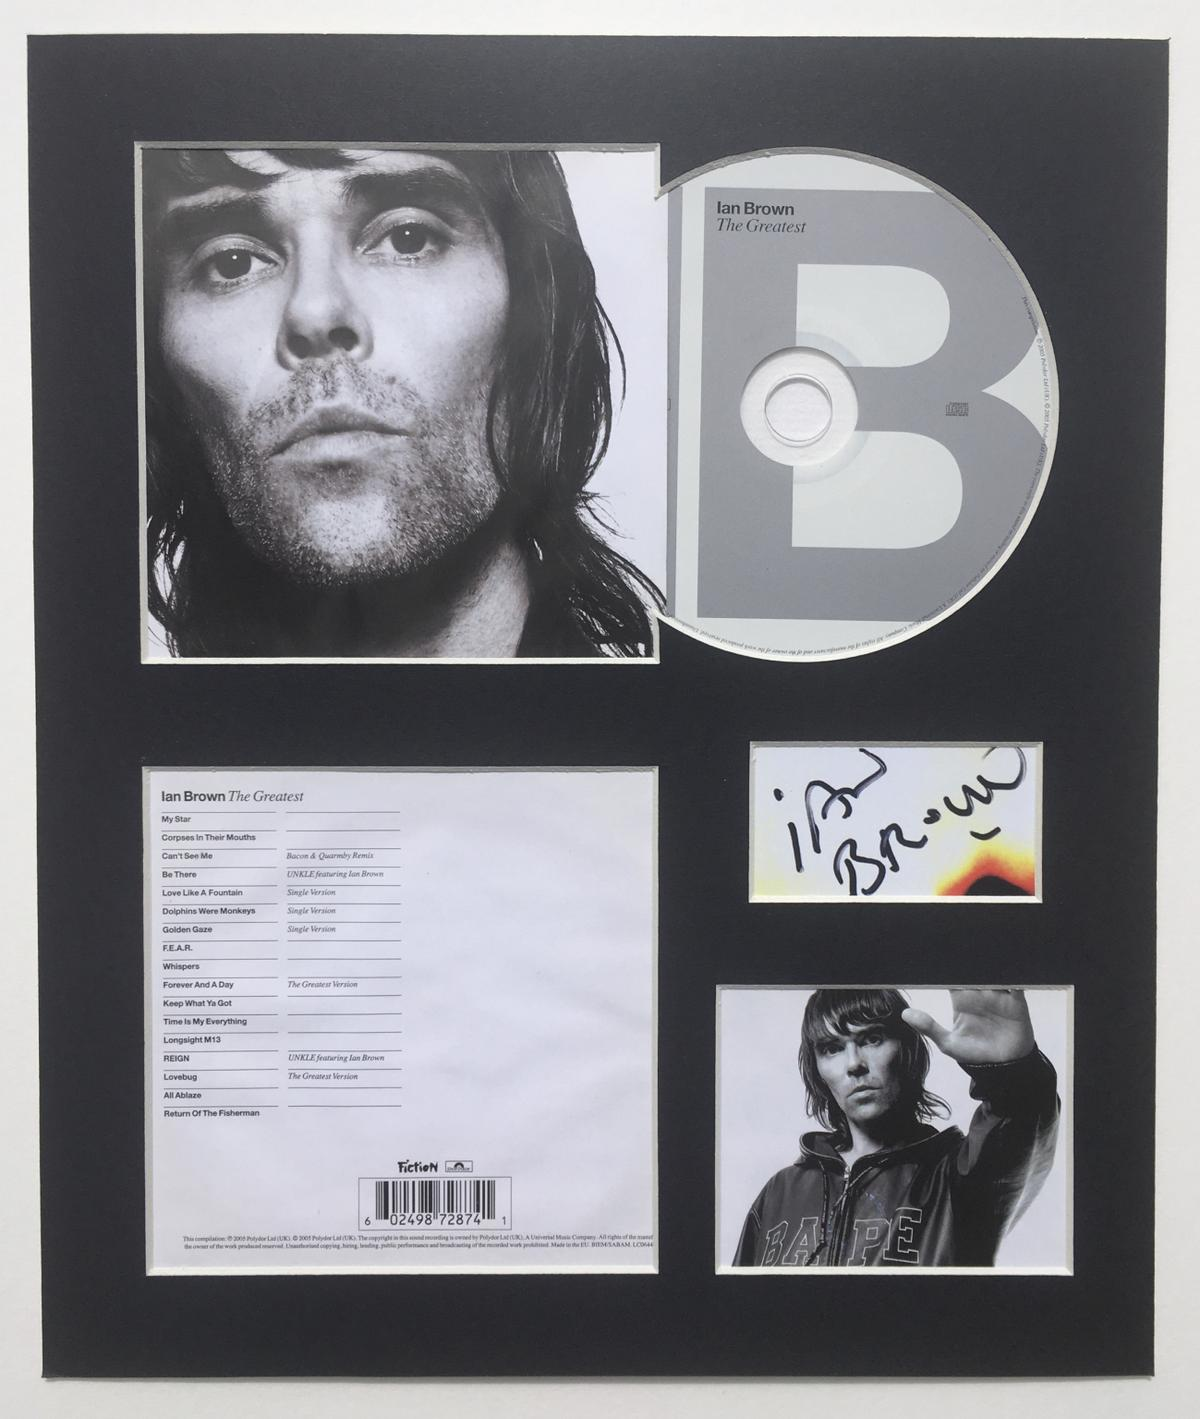 """**POSTAGE** for £3.99  All items are fully mounted, backed and ready to be framed.  Matte Black 2mm mountboard used.  Frame size required is 305mm x 255mm (12"""" x 10"""")  CD, Album Cover & track listing are original and authentic.  Autographs are digitally reproduced from originals, obtained from reputable sources.  An excellent and affordable way of owning a copy of your favorite stars autograph, when a hand signed one can often be too expensive or hard to obtain."""